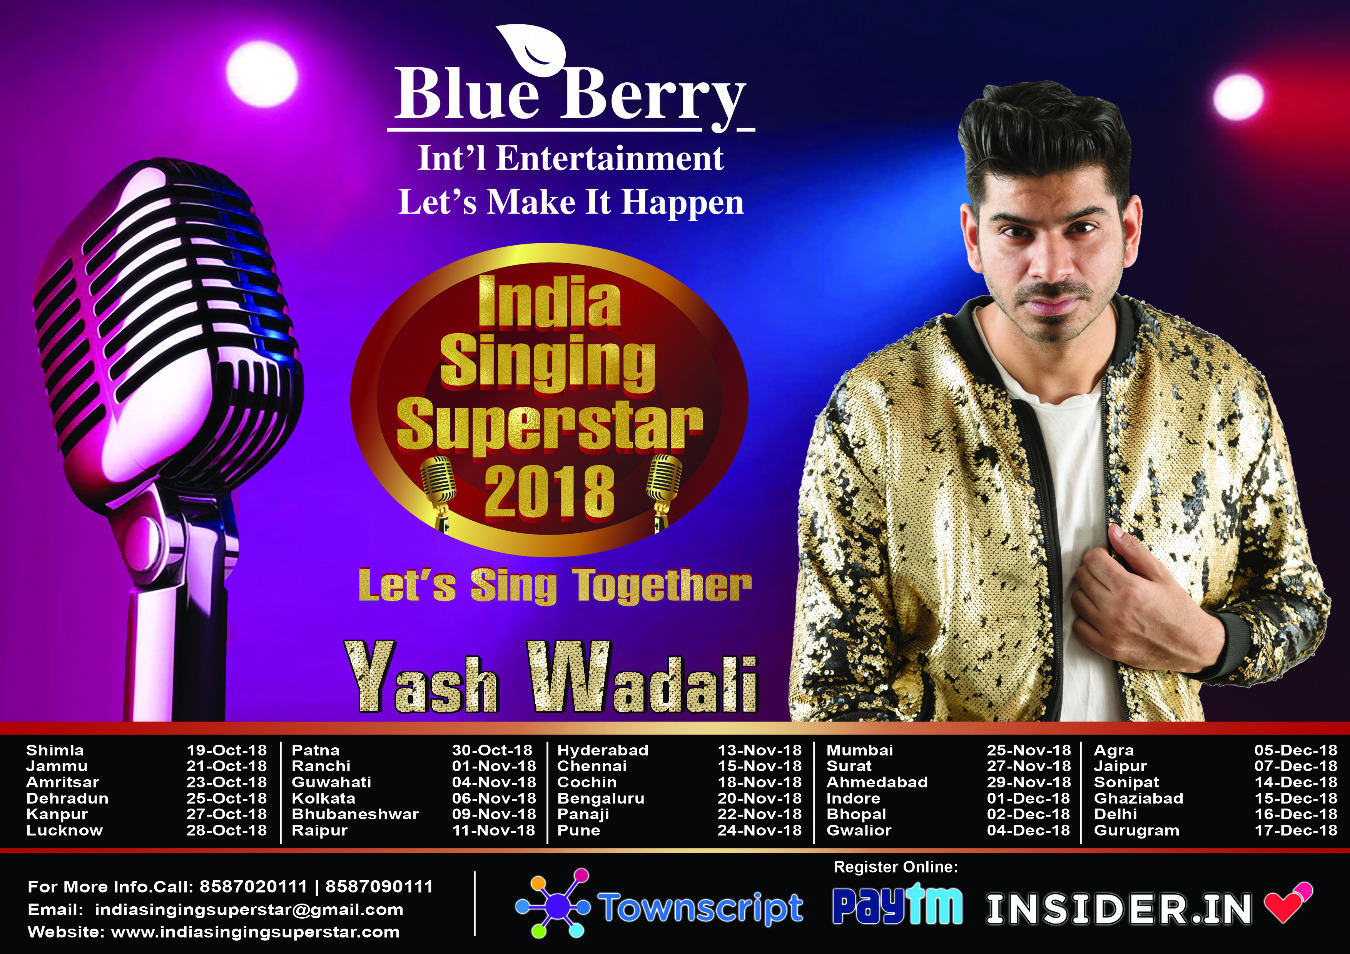 INDIA SINGING SUPERSTAR Patna 2018 Tickets by BLUEBERRY INTERNATIONAL  ENTERTAINMENT, 30 Oct, 2018, Patna Event